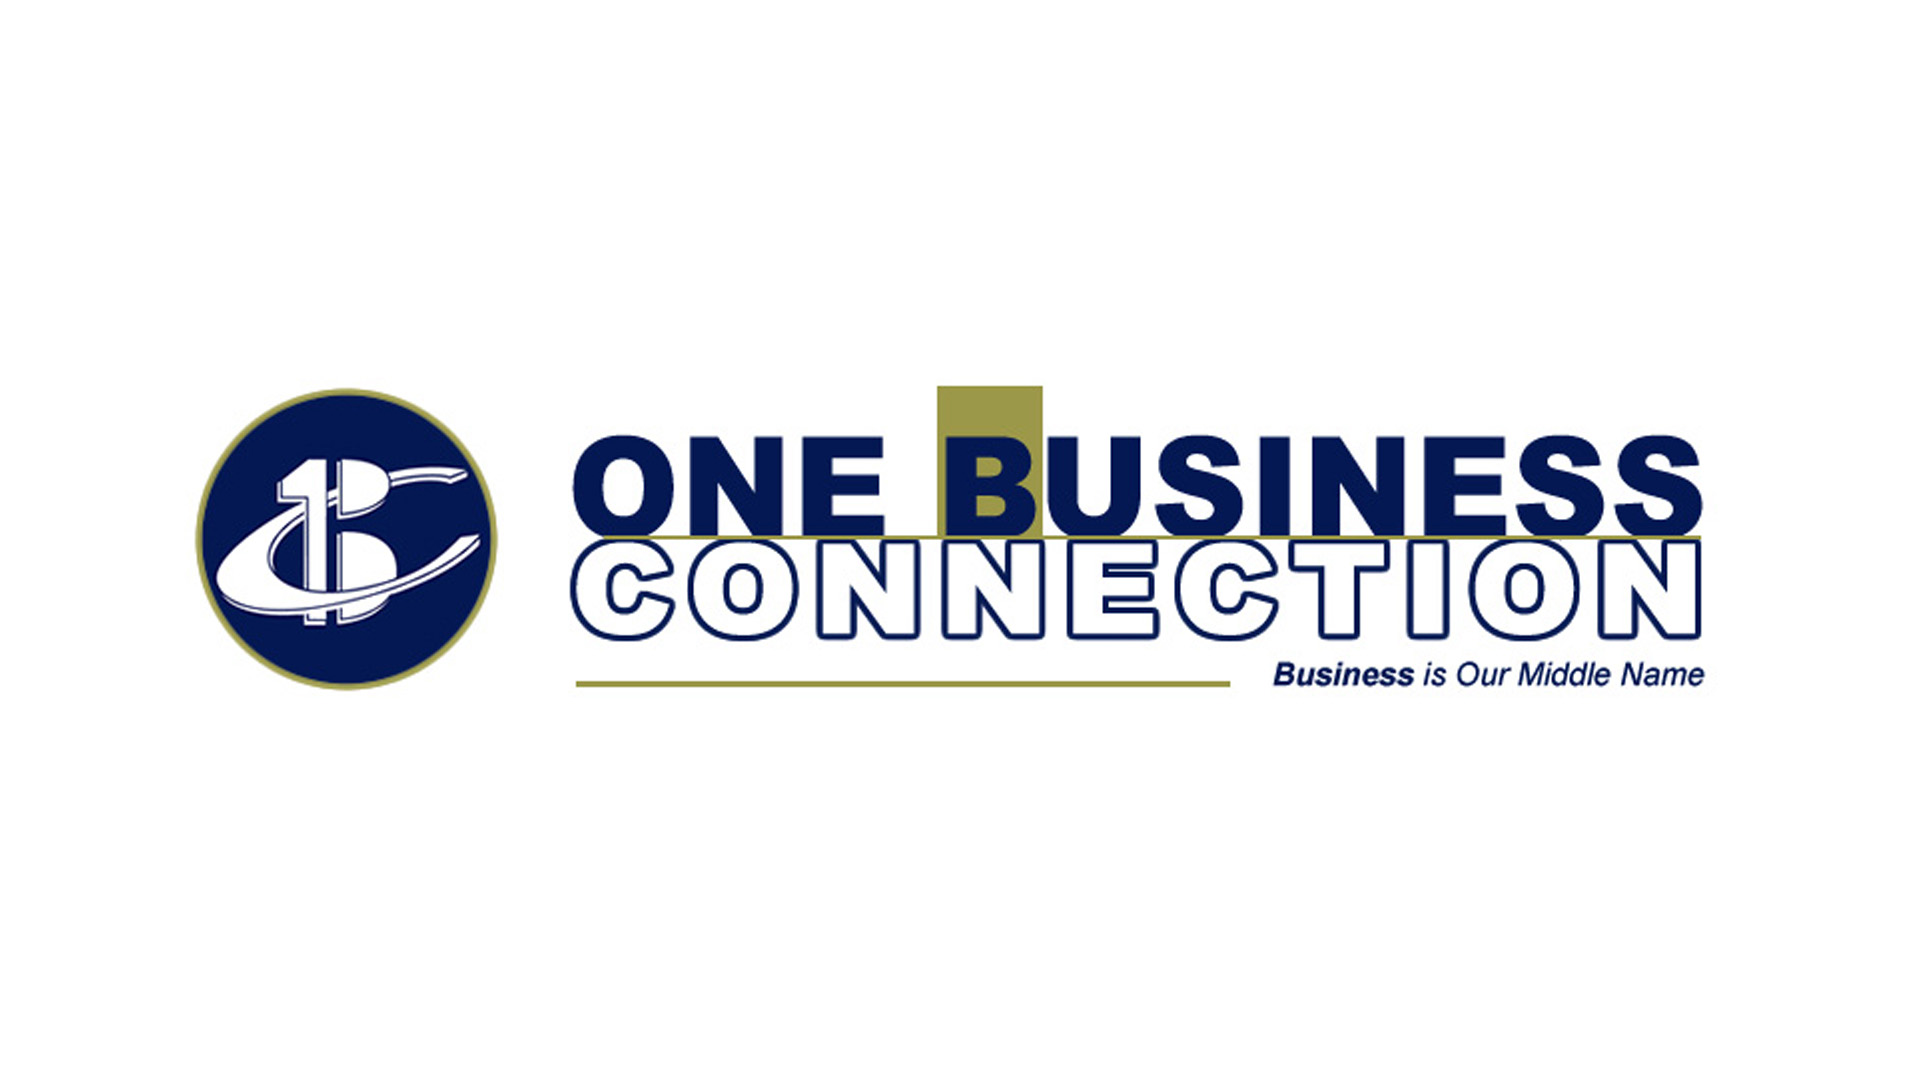 One Business Connection